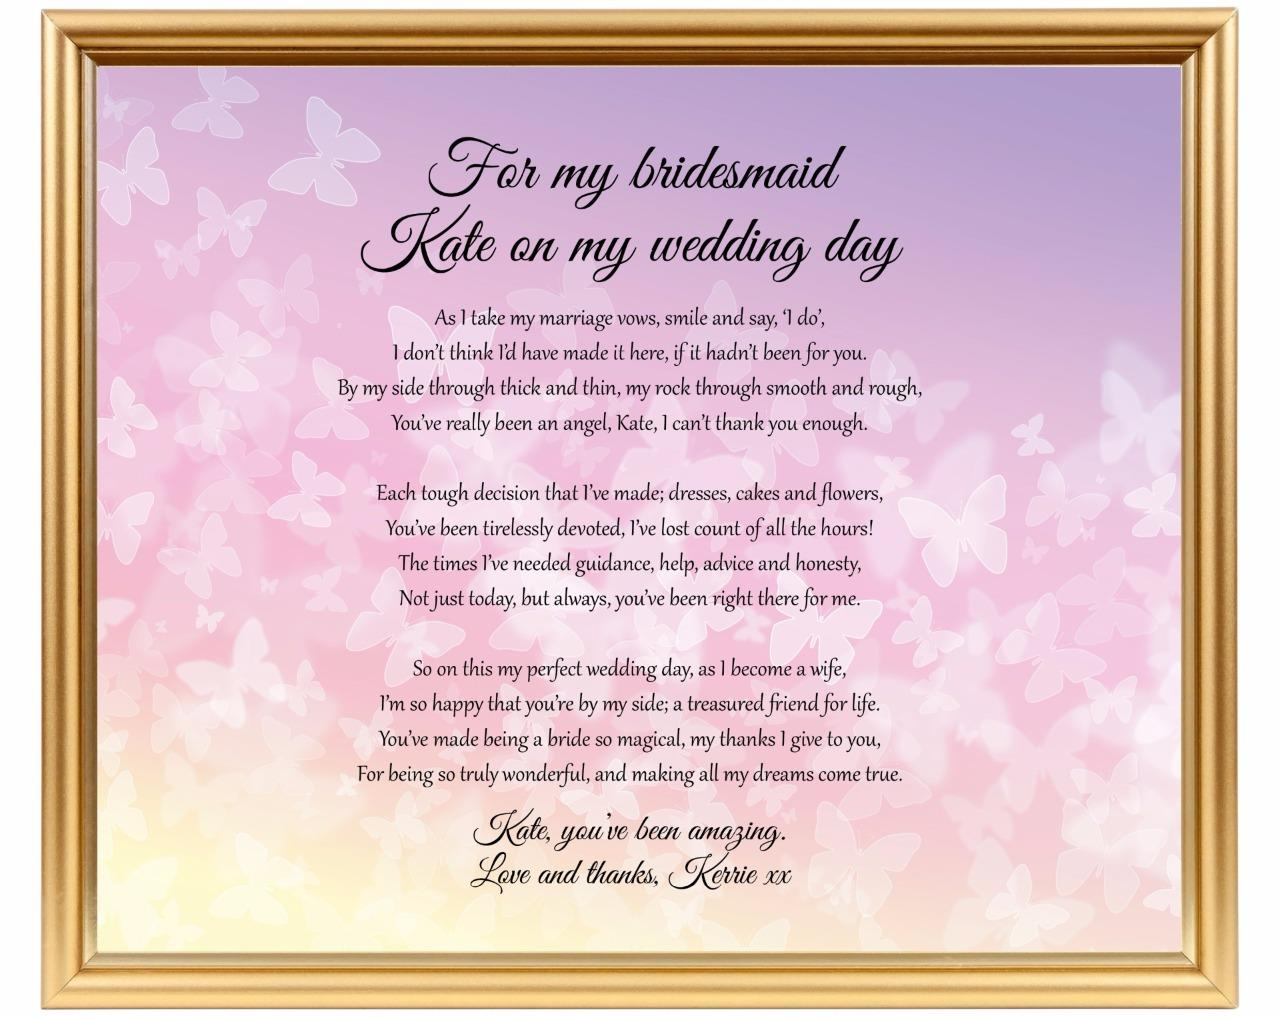 Wedding Gift Check Payable To : ... you for being my BridesmaidWedding gift poem for Chief Bridesmaid